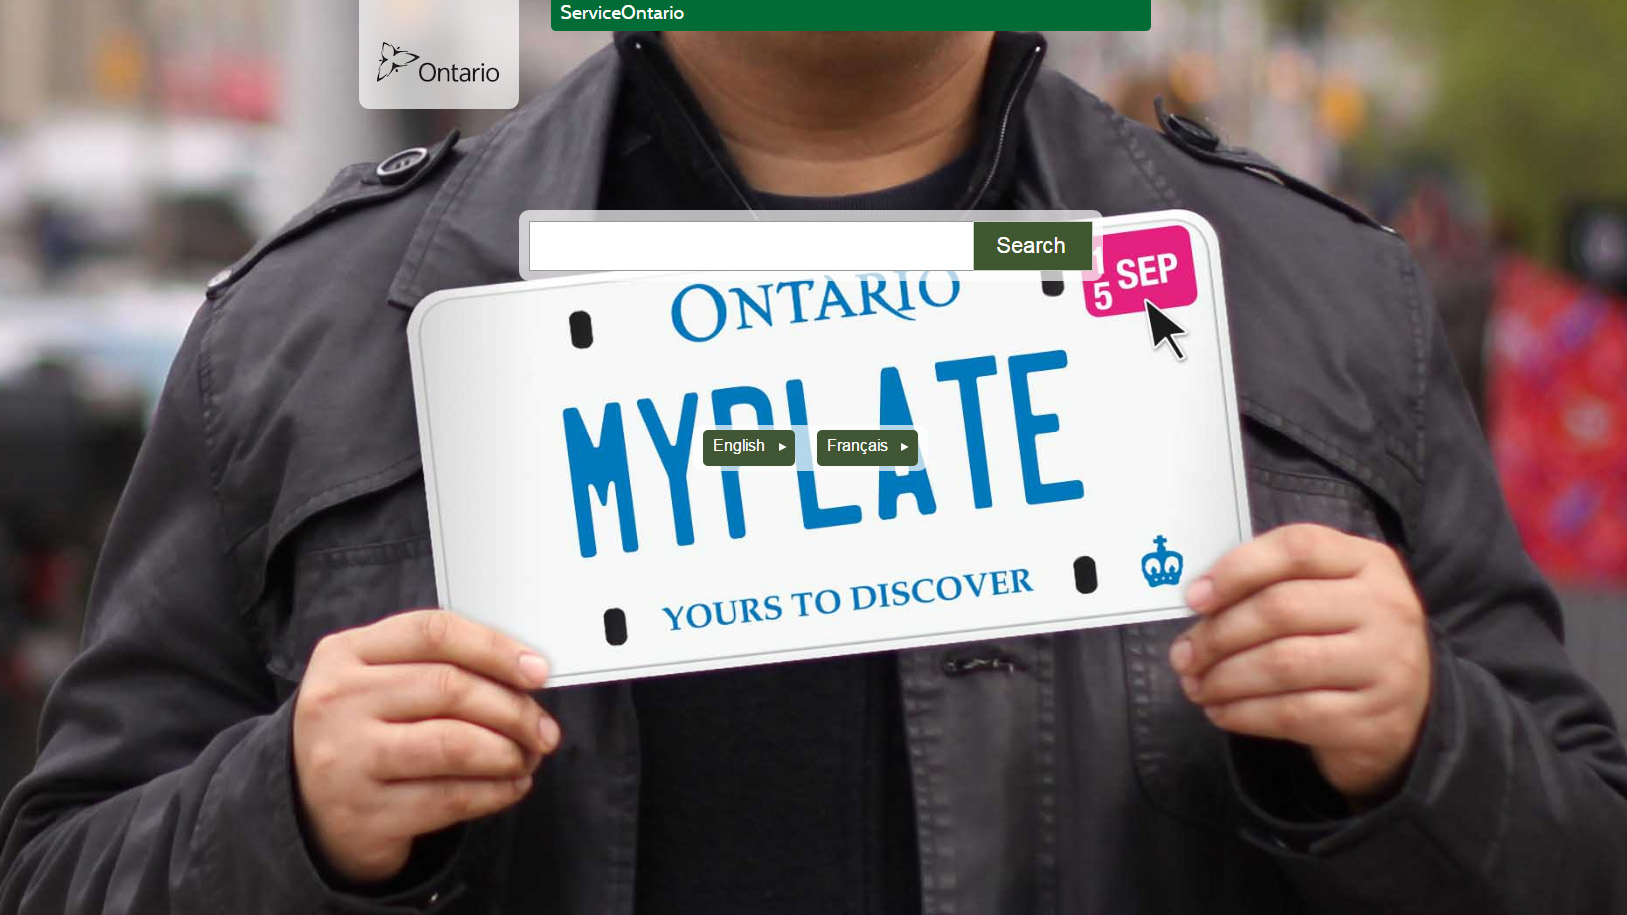 service ontario driver's license - 680 NEWS